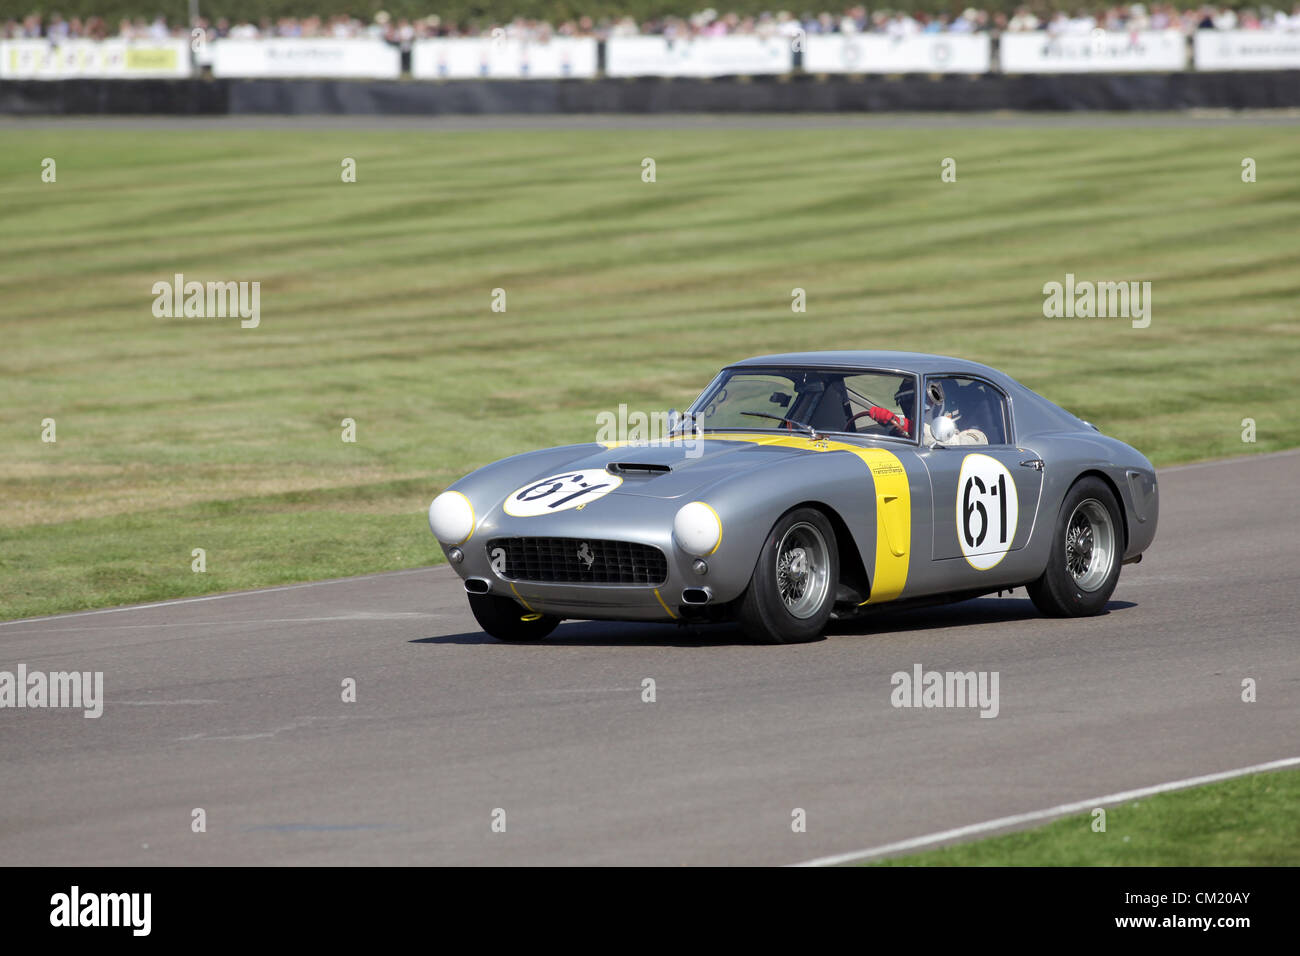 Goodwood Estate, Chichester, UK. 15th September 2012. Anthony Reid driving a Ferrari GT SWB/C during the RAC TT - Stock Image